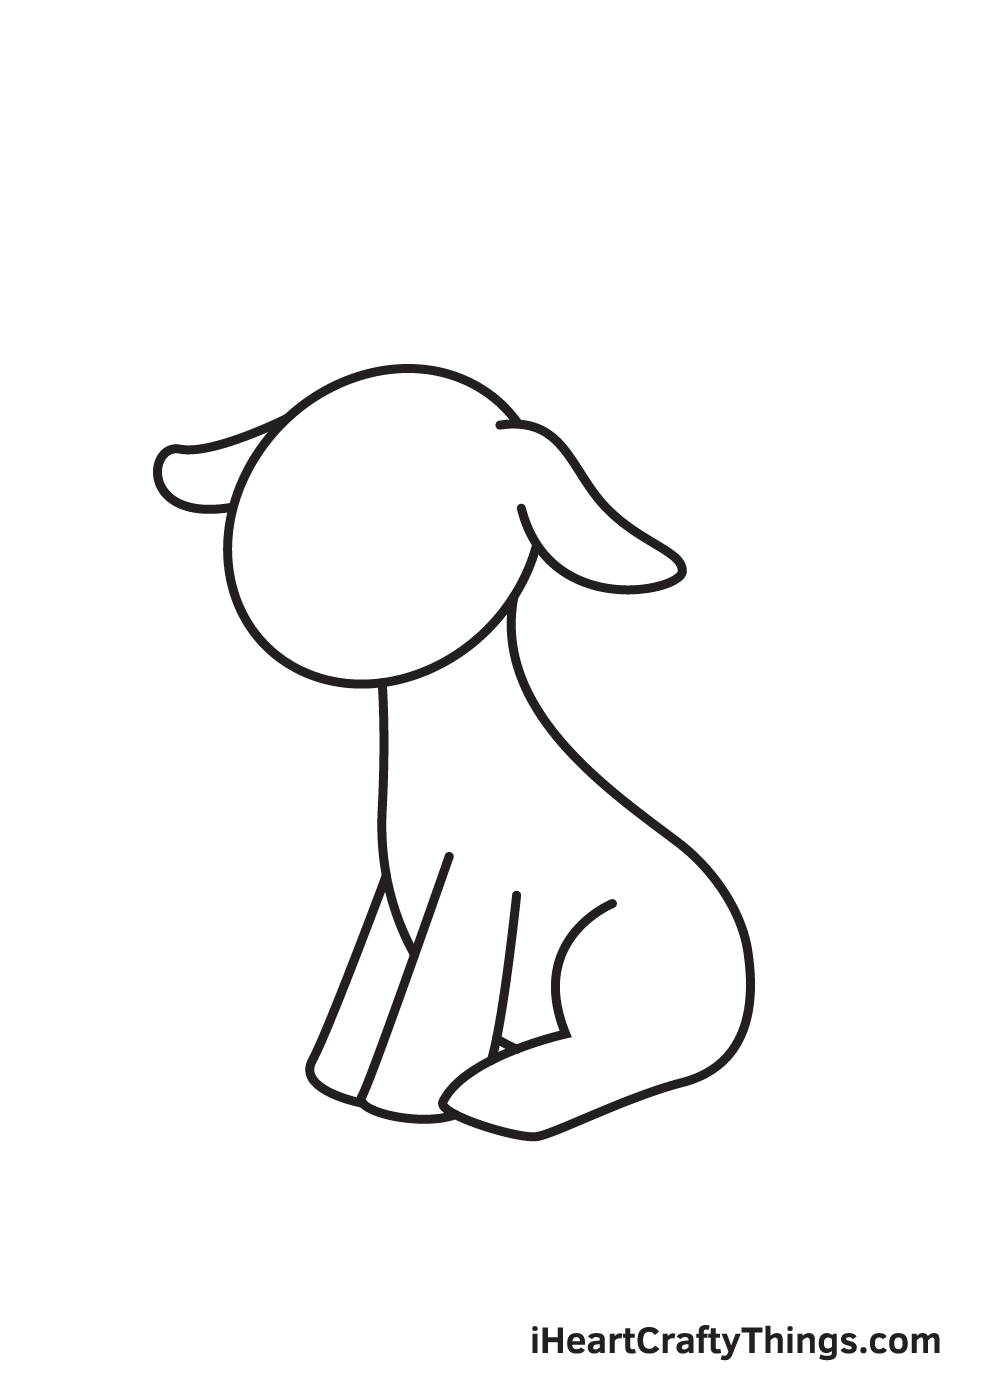 goat drawing - step 5